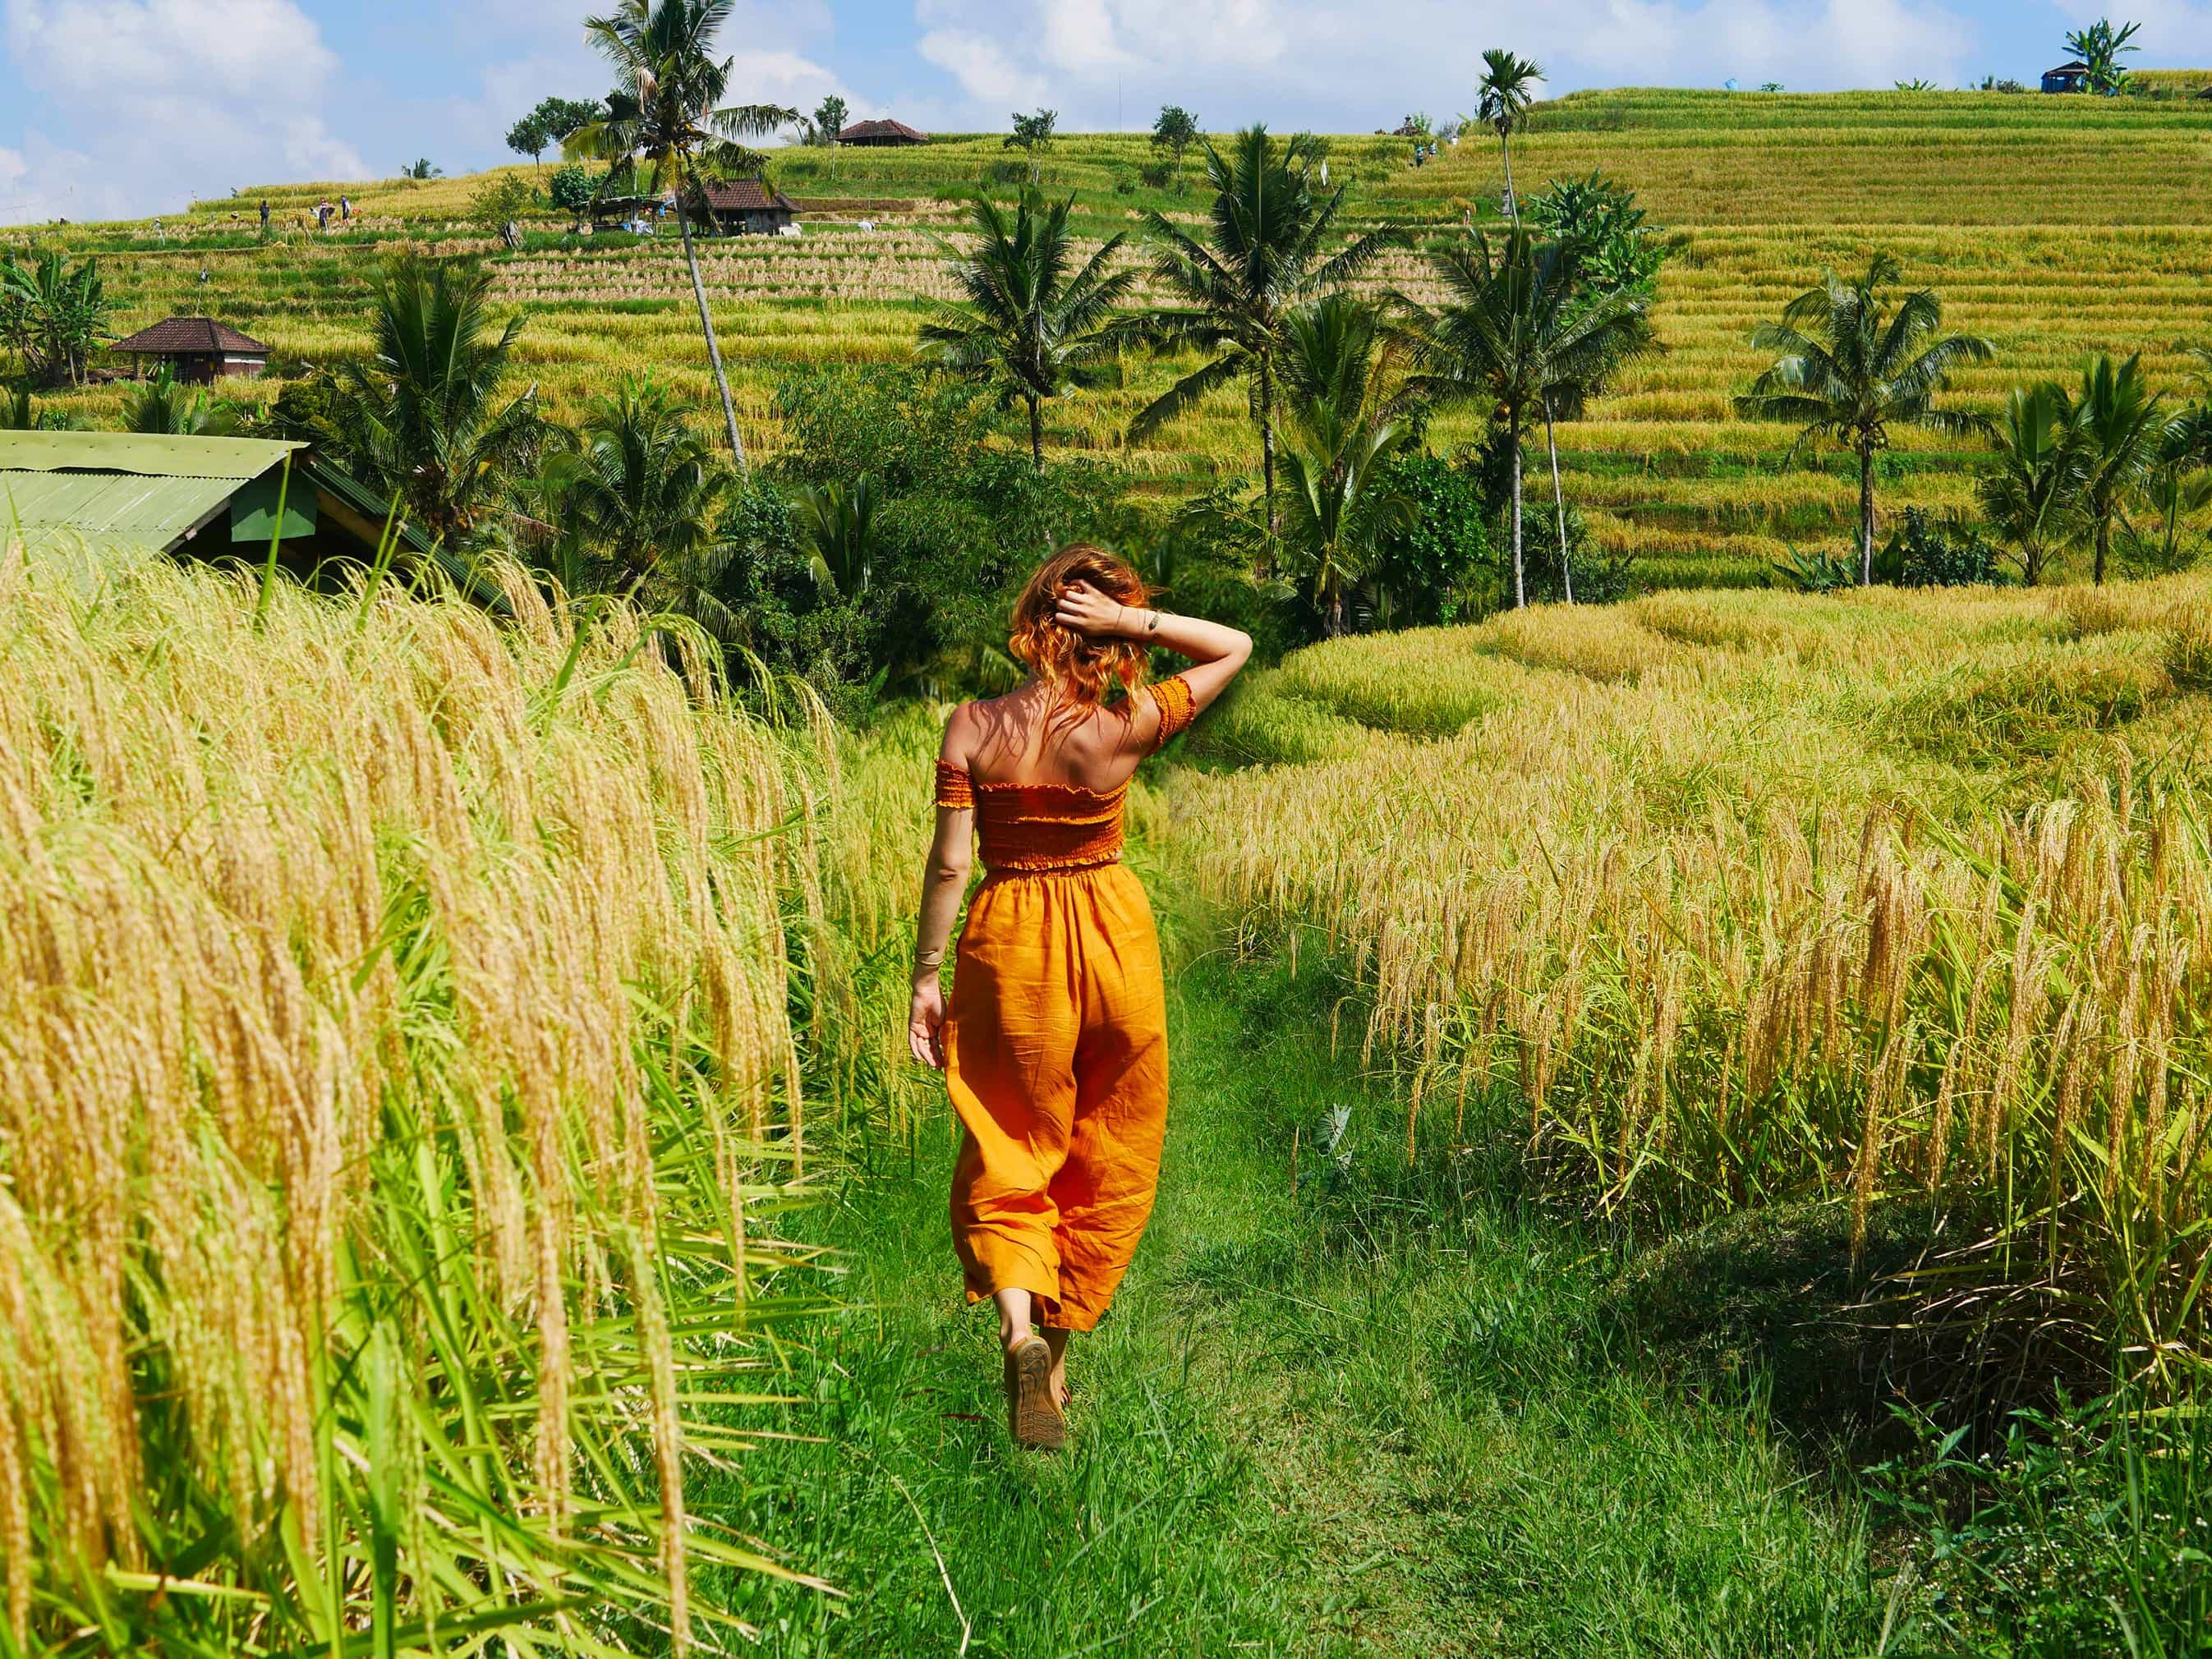 Lauren Ronquillo in Jatiluwih Rice Terraces, Bali Indonesia by Brianna D